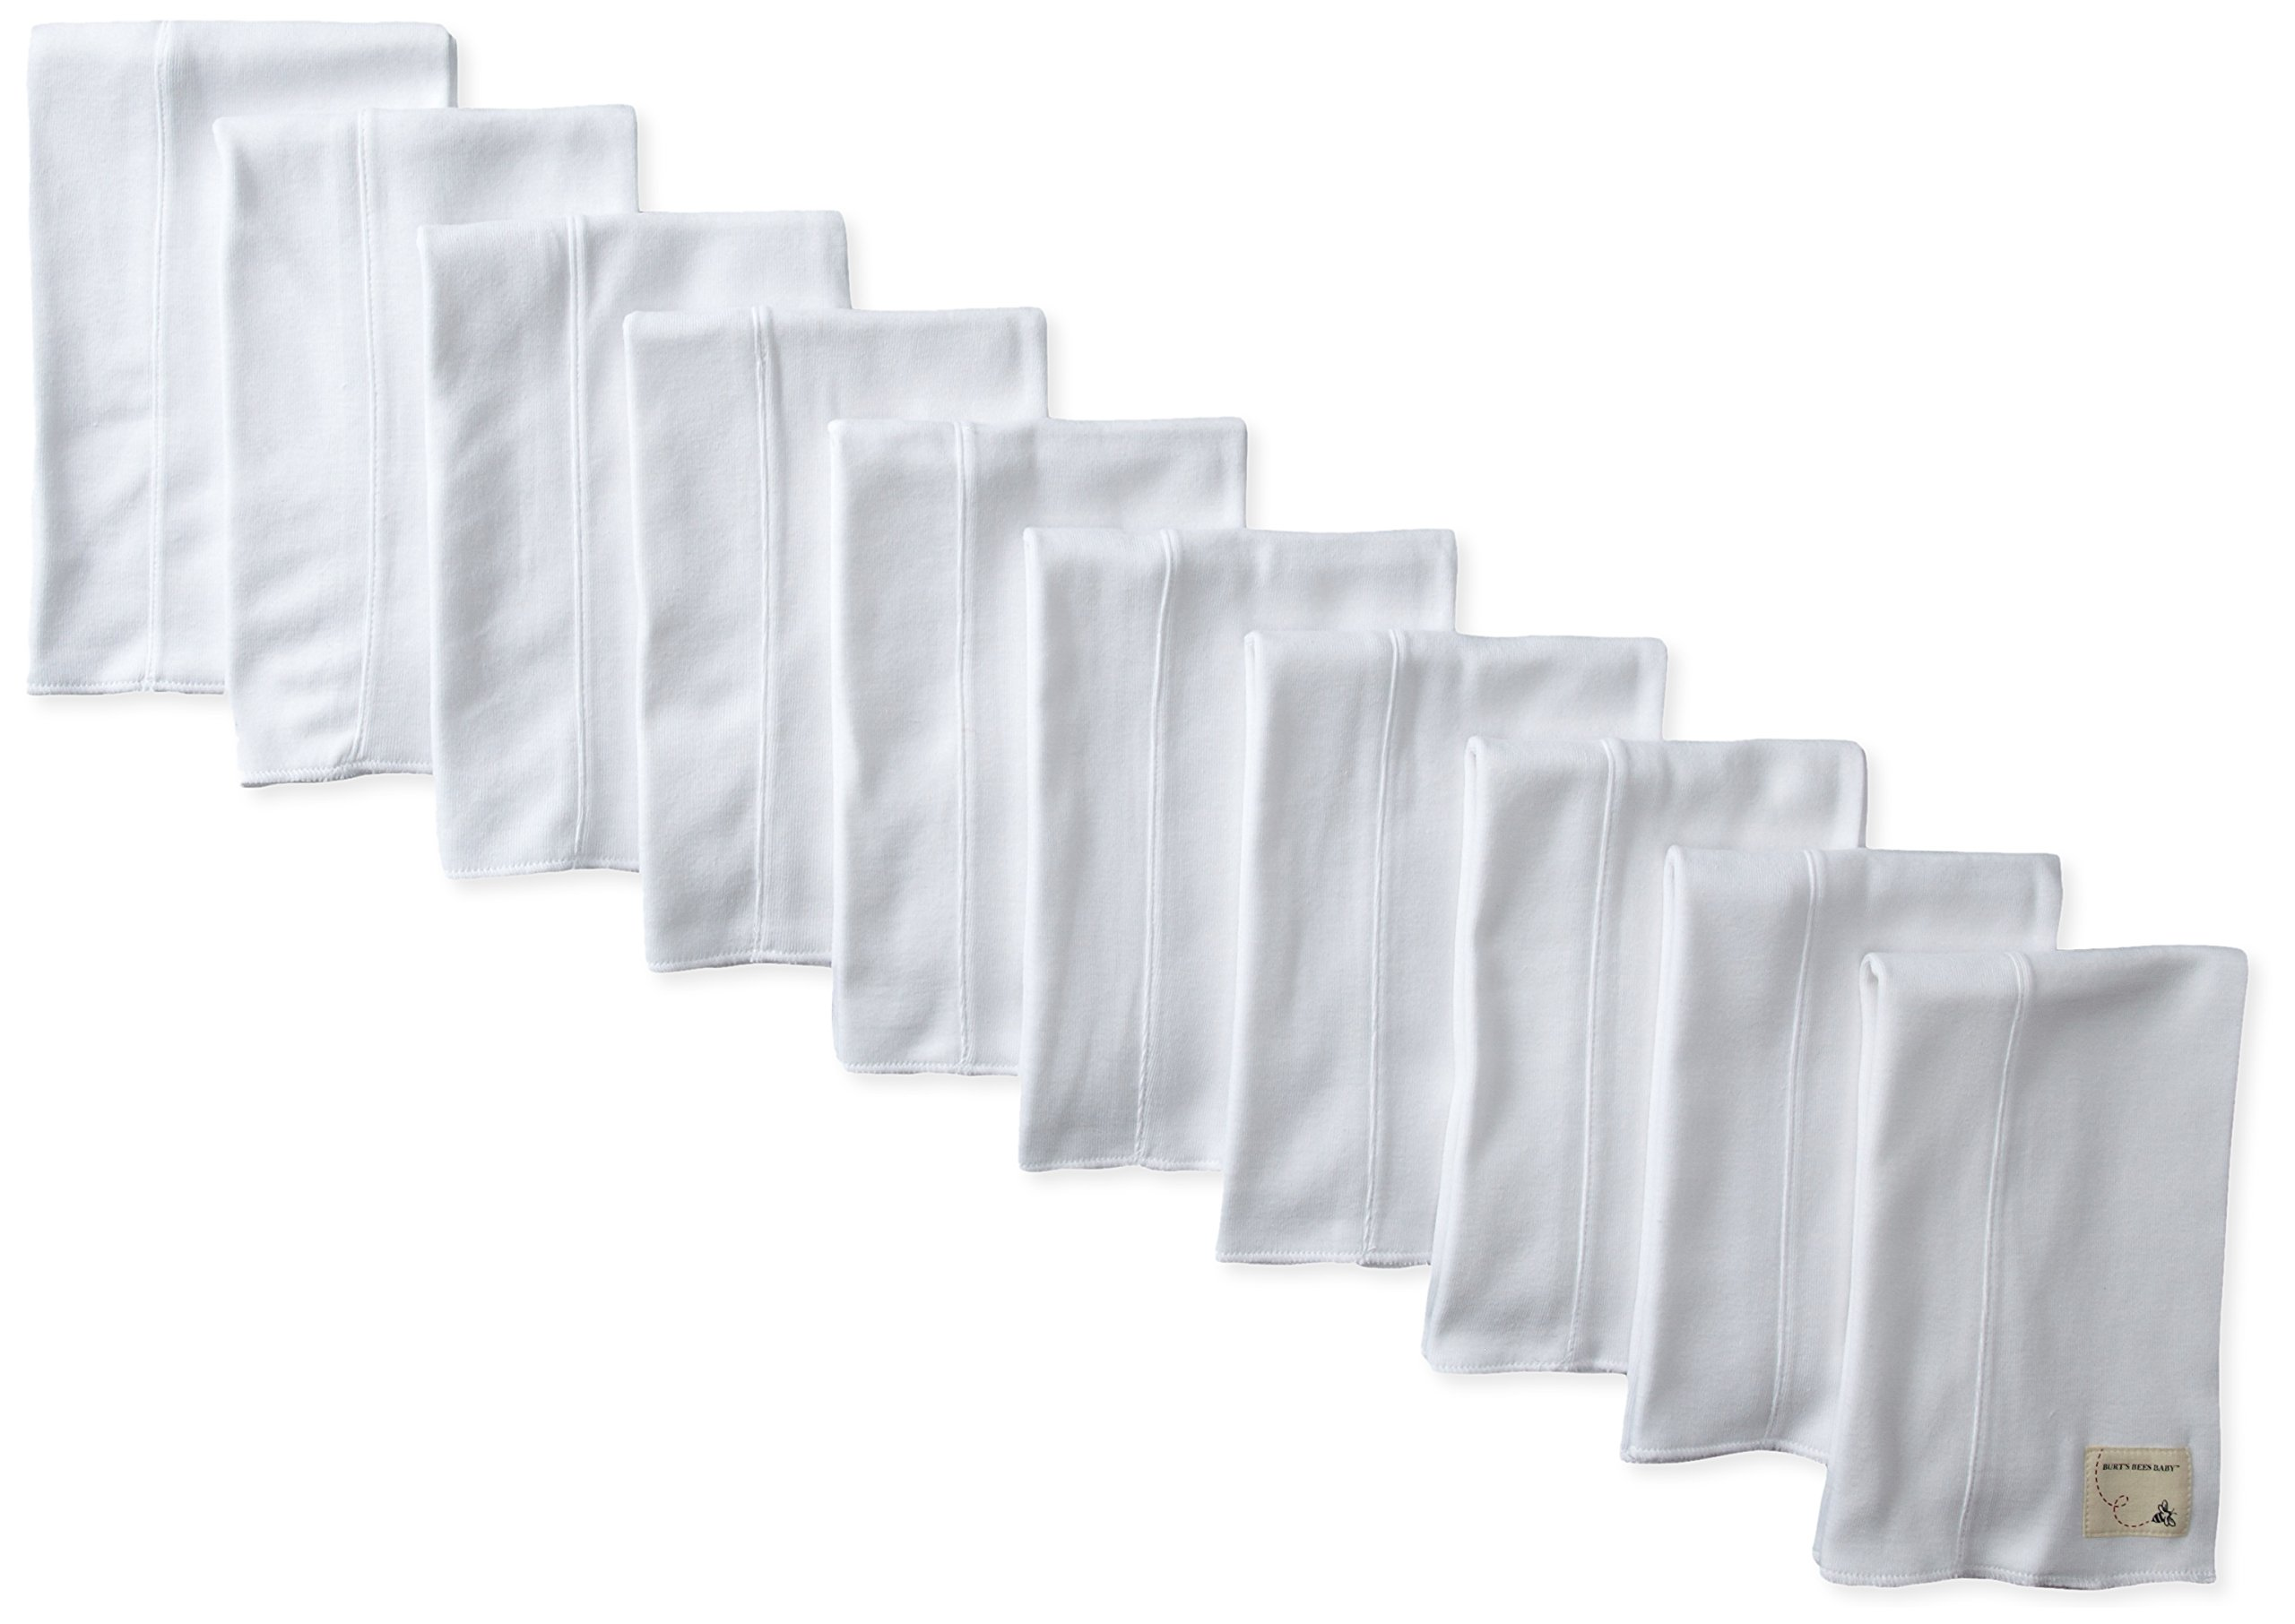 LOVATIC Baby Set of 10 Bee Essentials Solid Burp Cloths, 100% Organic Cotton, Cloud 10 Pack by LOVATIC (Image #1)